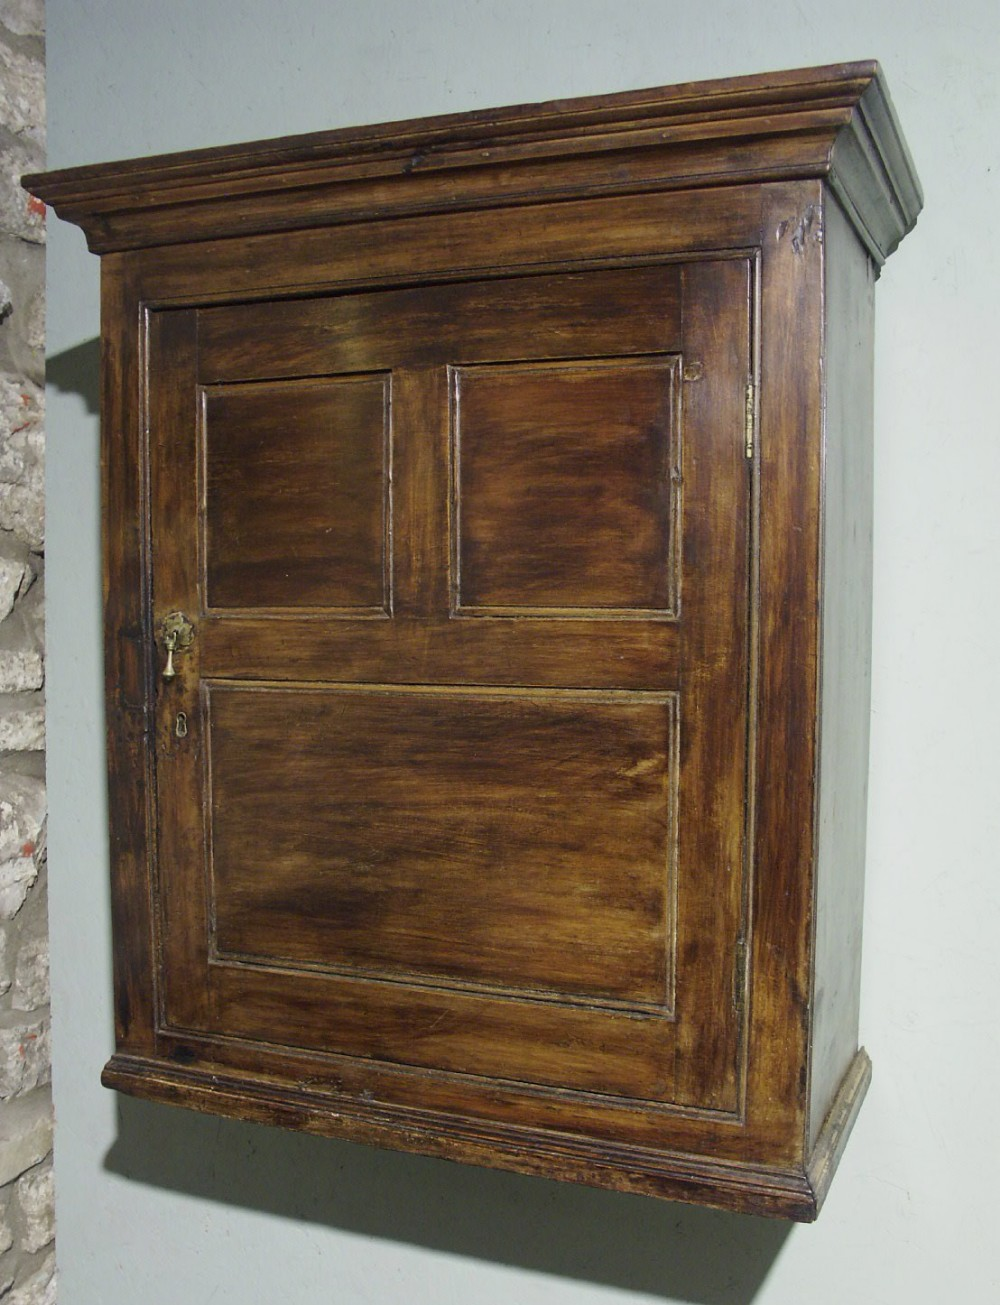 welsh fruitwood spice cupboard circa 1780